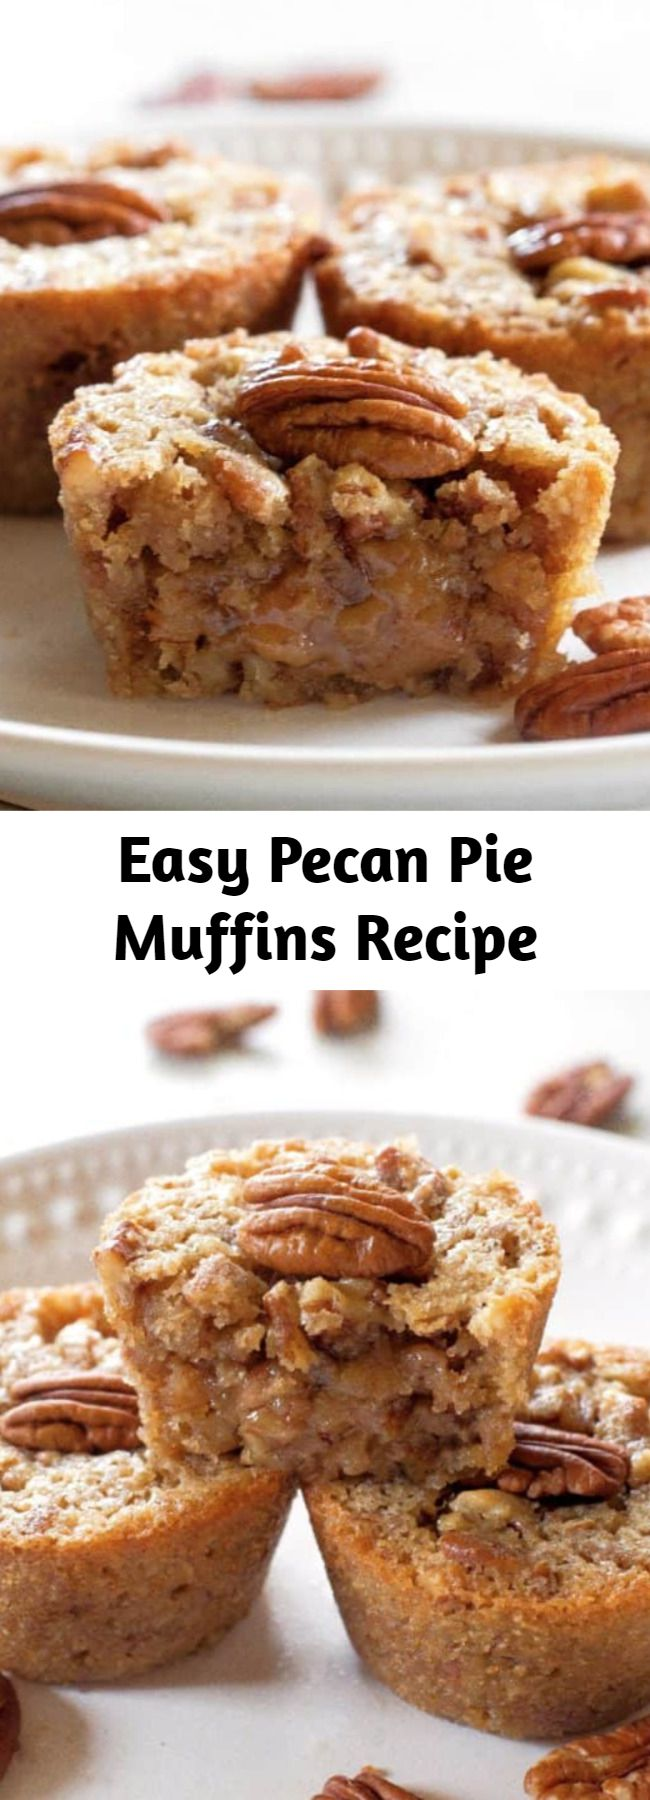 Easy Pecan Pie Muffins Recipe - These Pecan Pie Muffins are a mix between a pie and a muffin. They have a muffin texture with a soft gooey inside like a mini Southern pecan pie. This recipe is one of the highest used recipes during the fall especially for Thanksgiving!